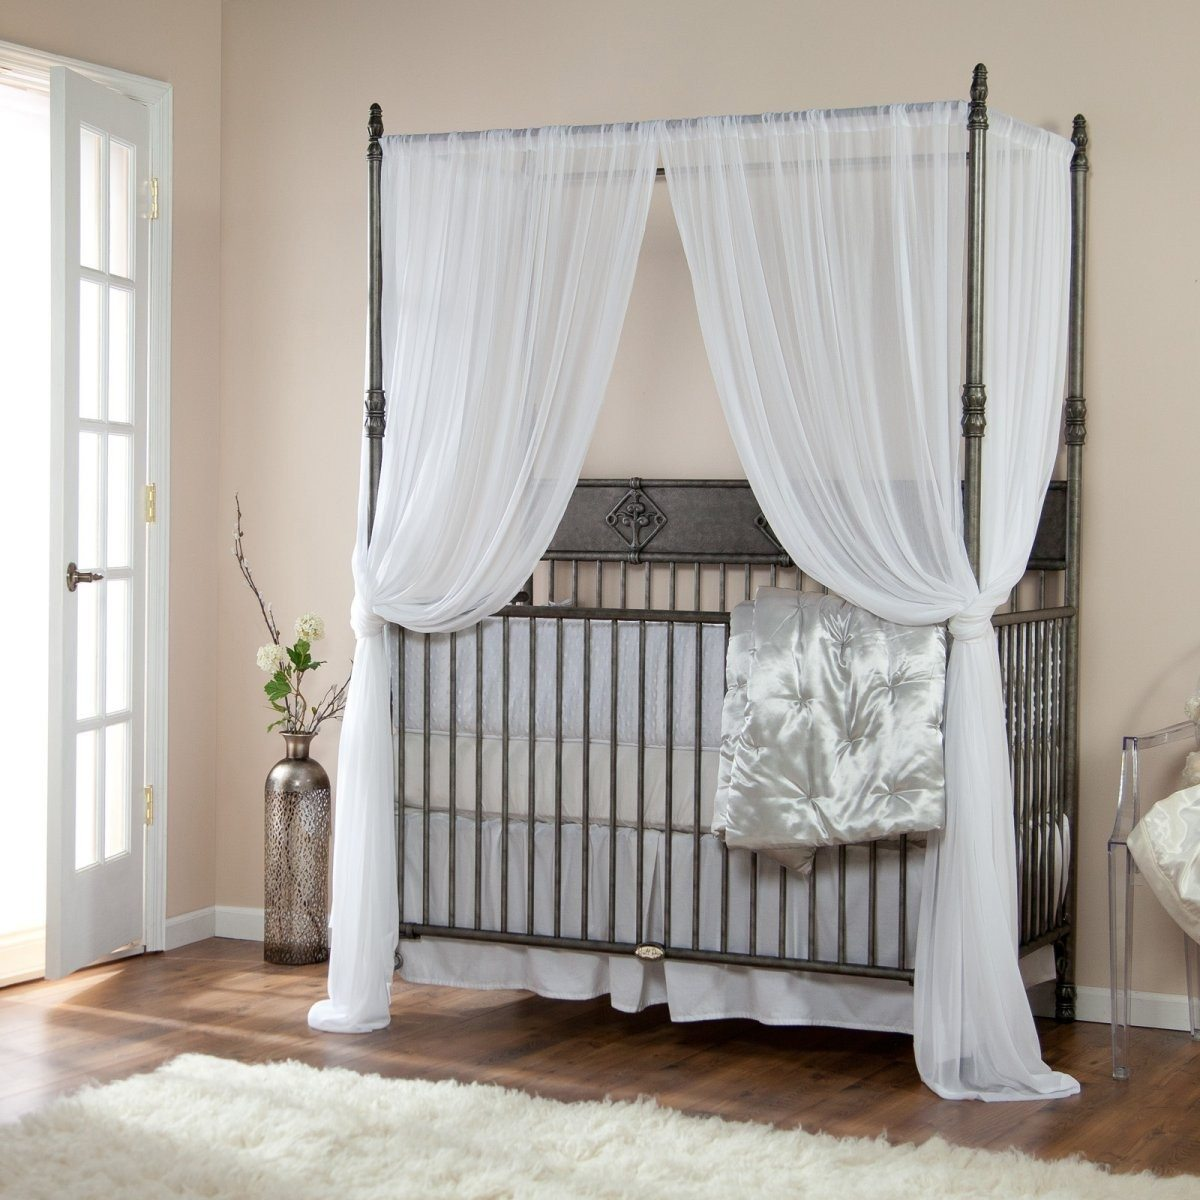 Delta Crib Reviews | Ragazzi Baby Furniture | Bassett Baby Crib